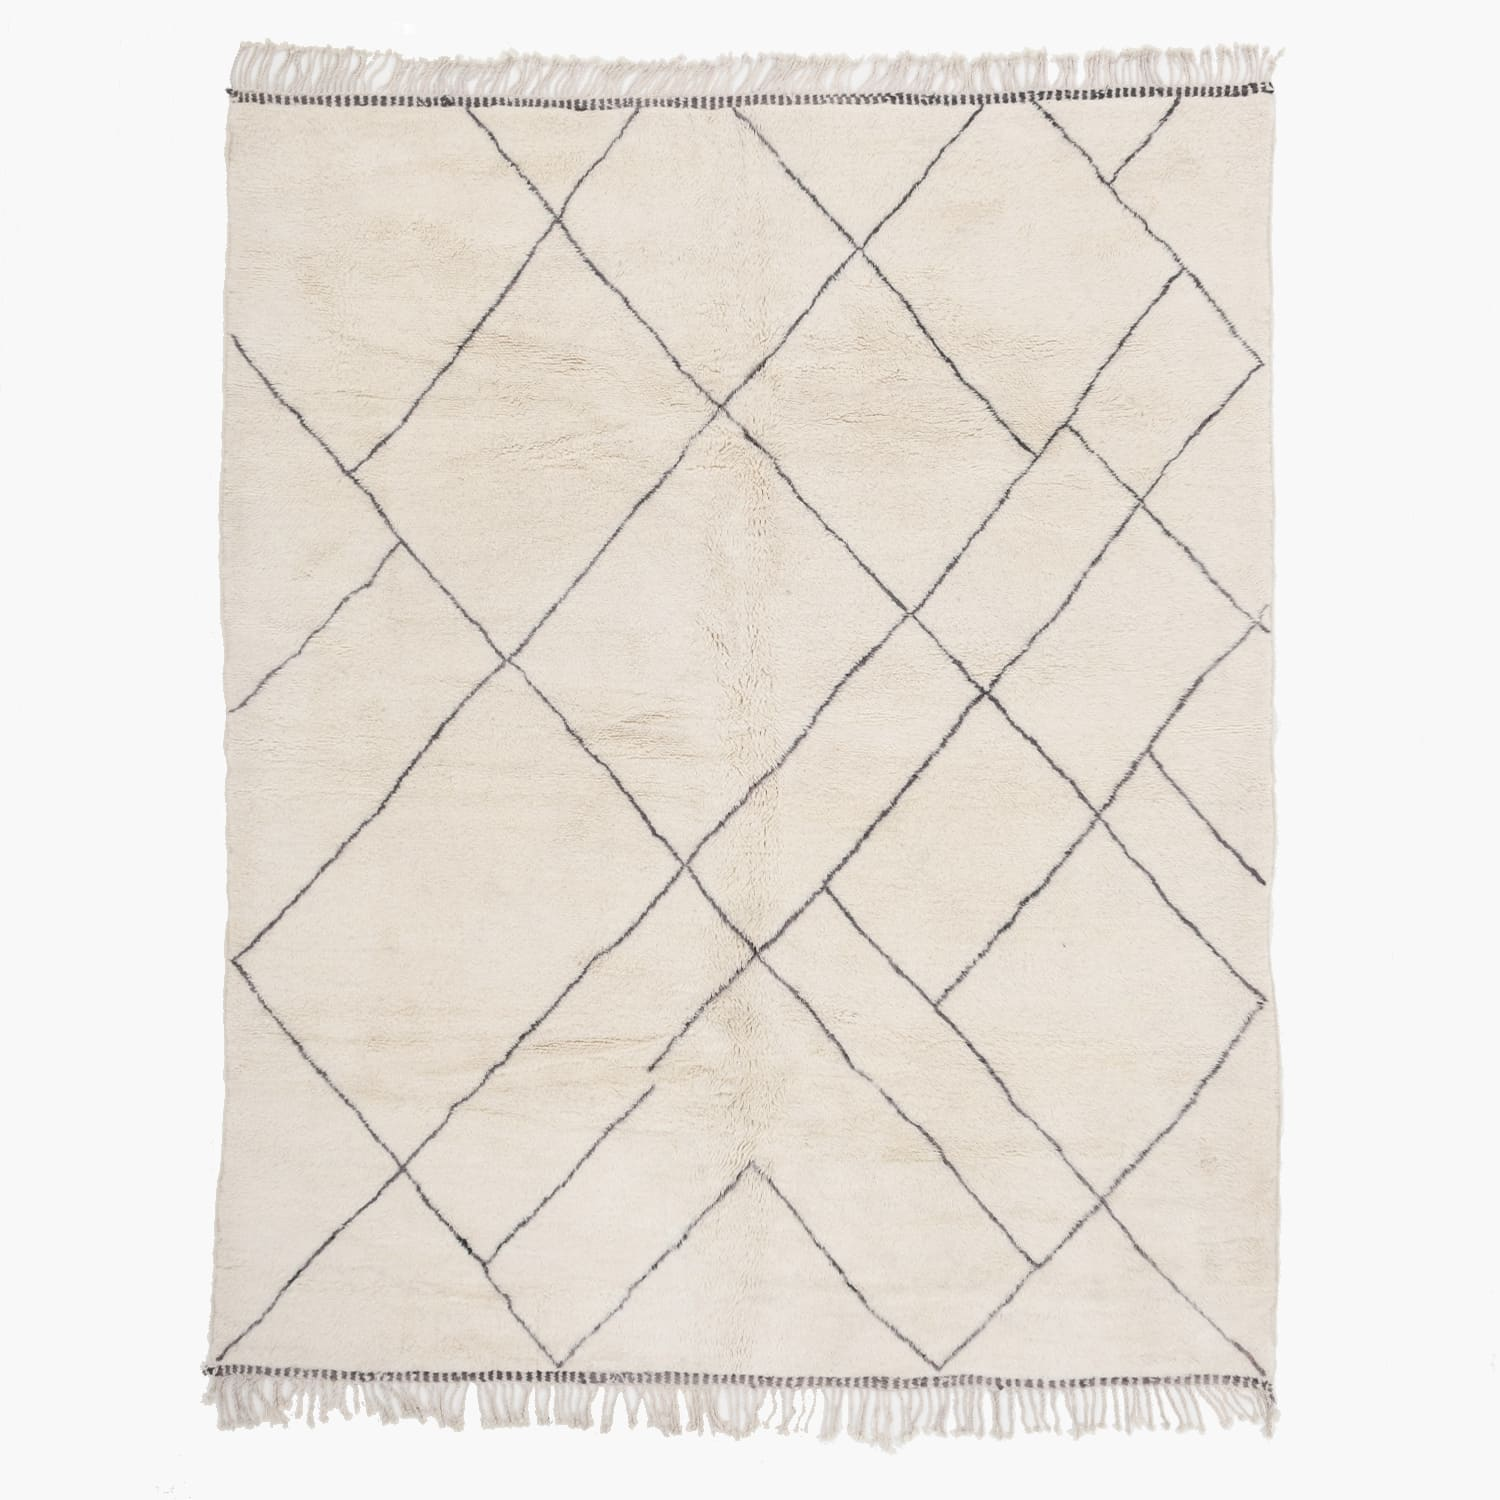 Luxury Mrirt rug 7.9 x 9.8 ft / 240 x 299 cm - BENISOUK